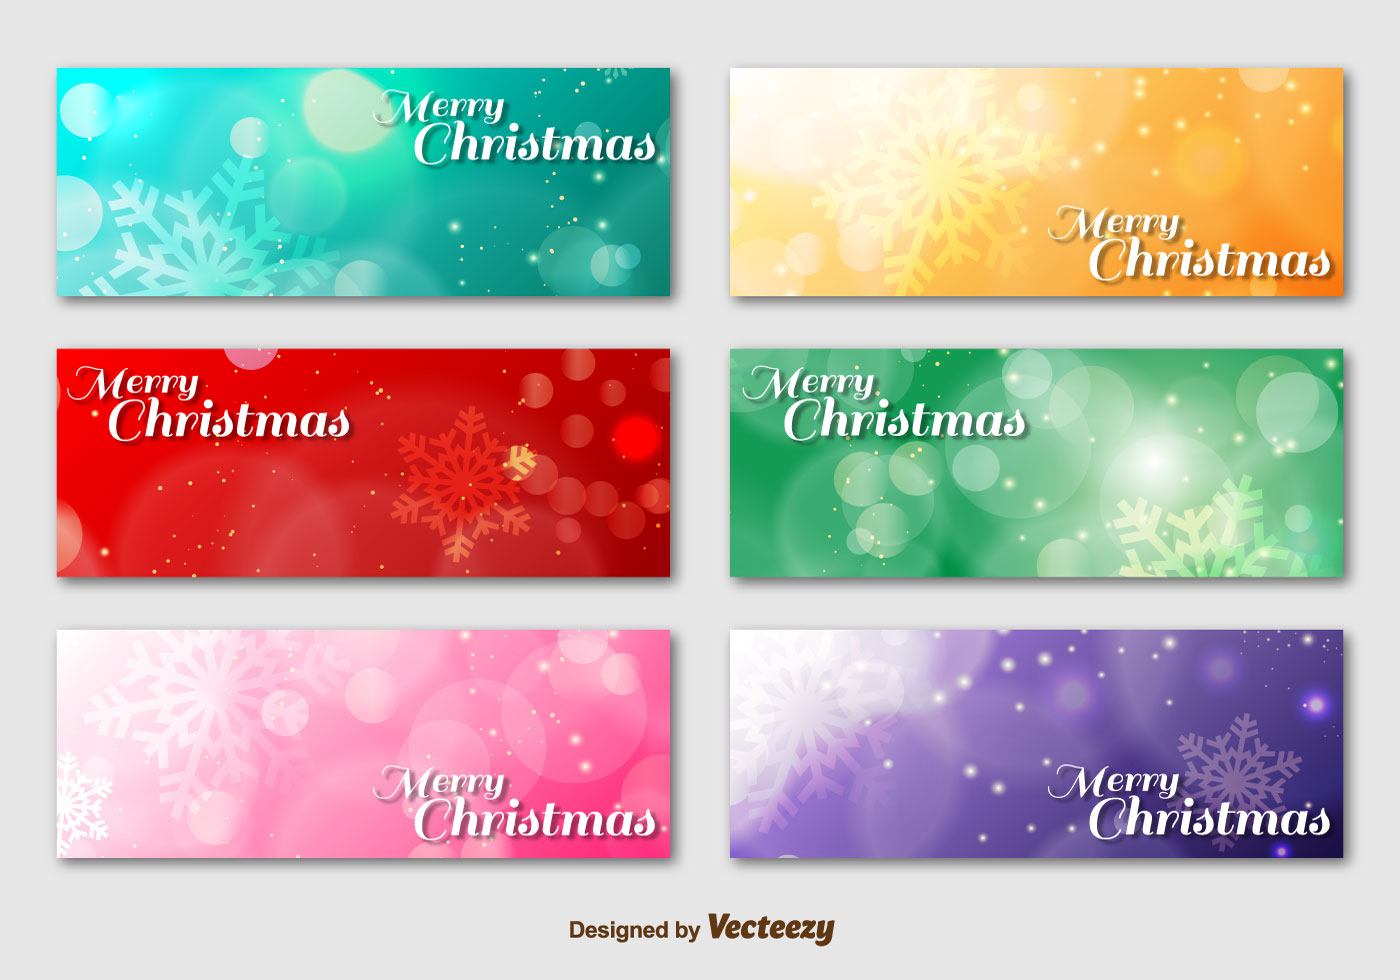 merry christmas background banner - download free vector art, stock